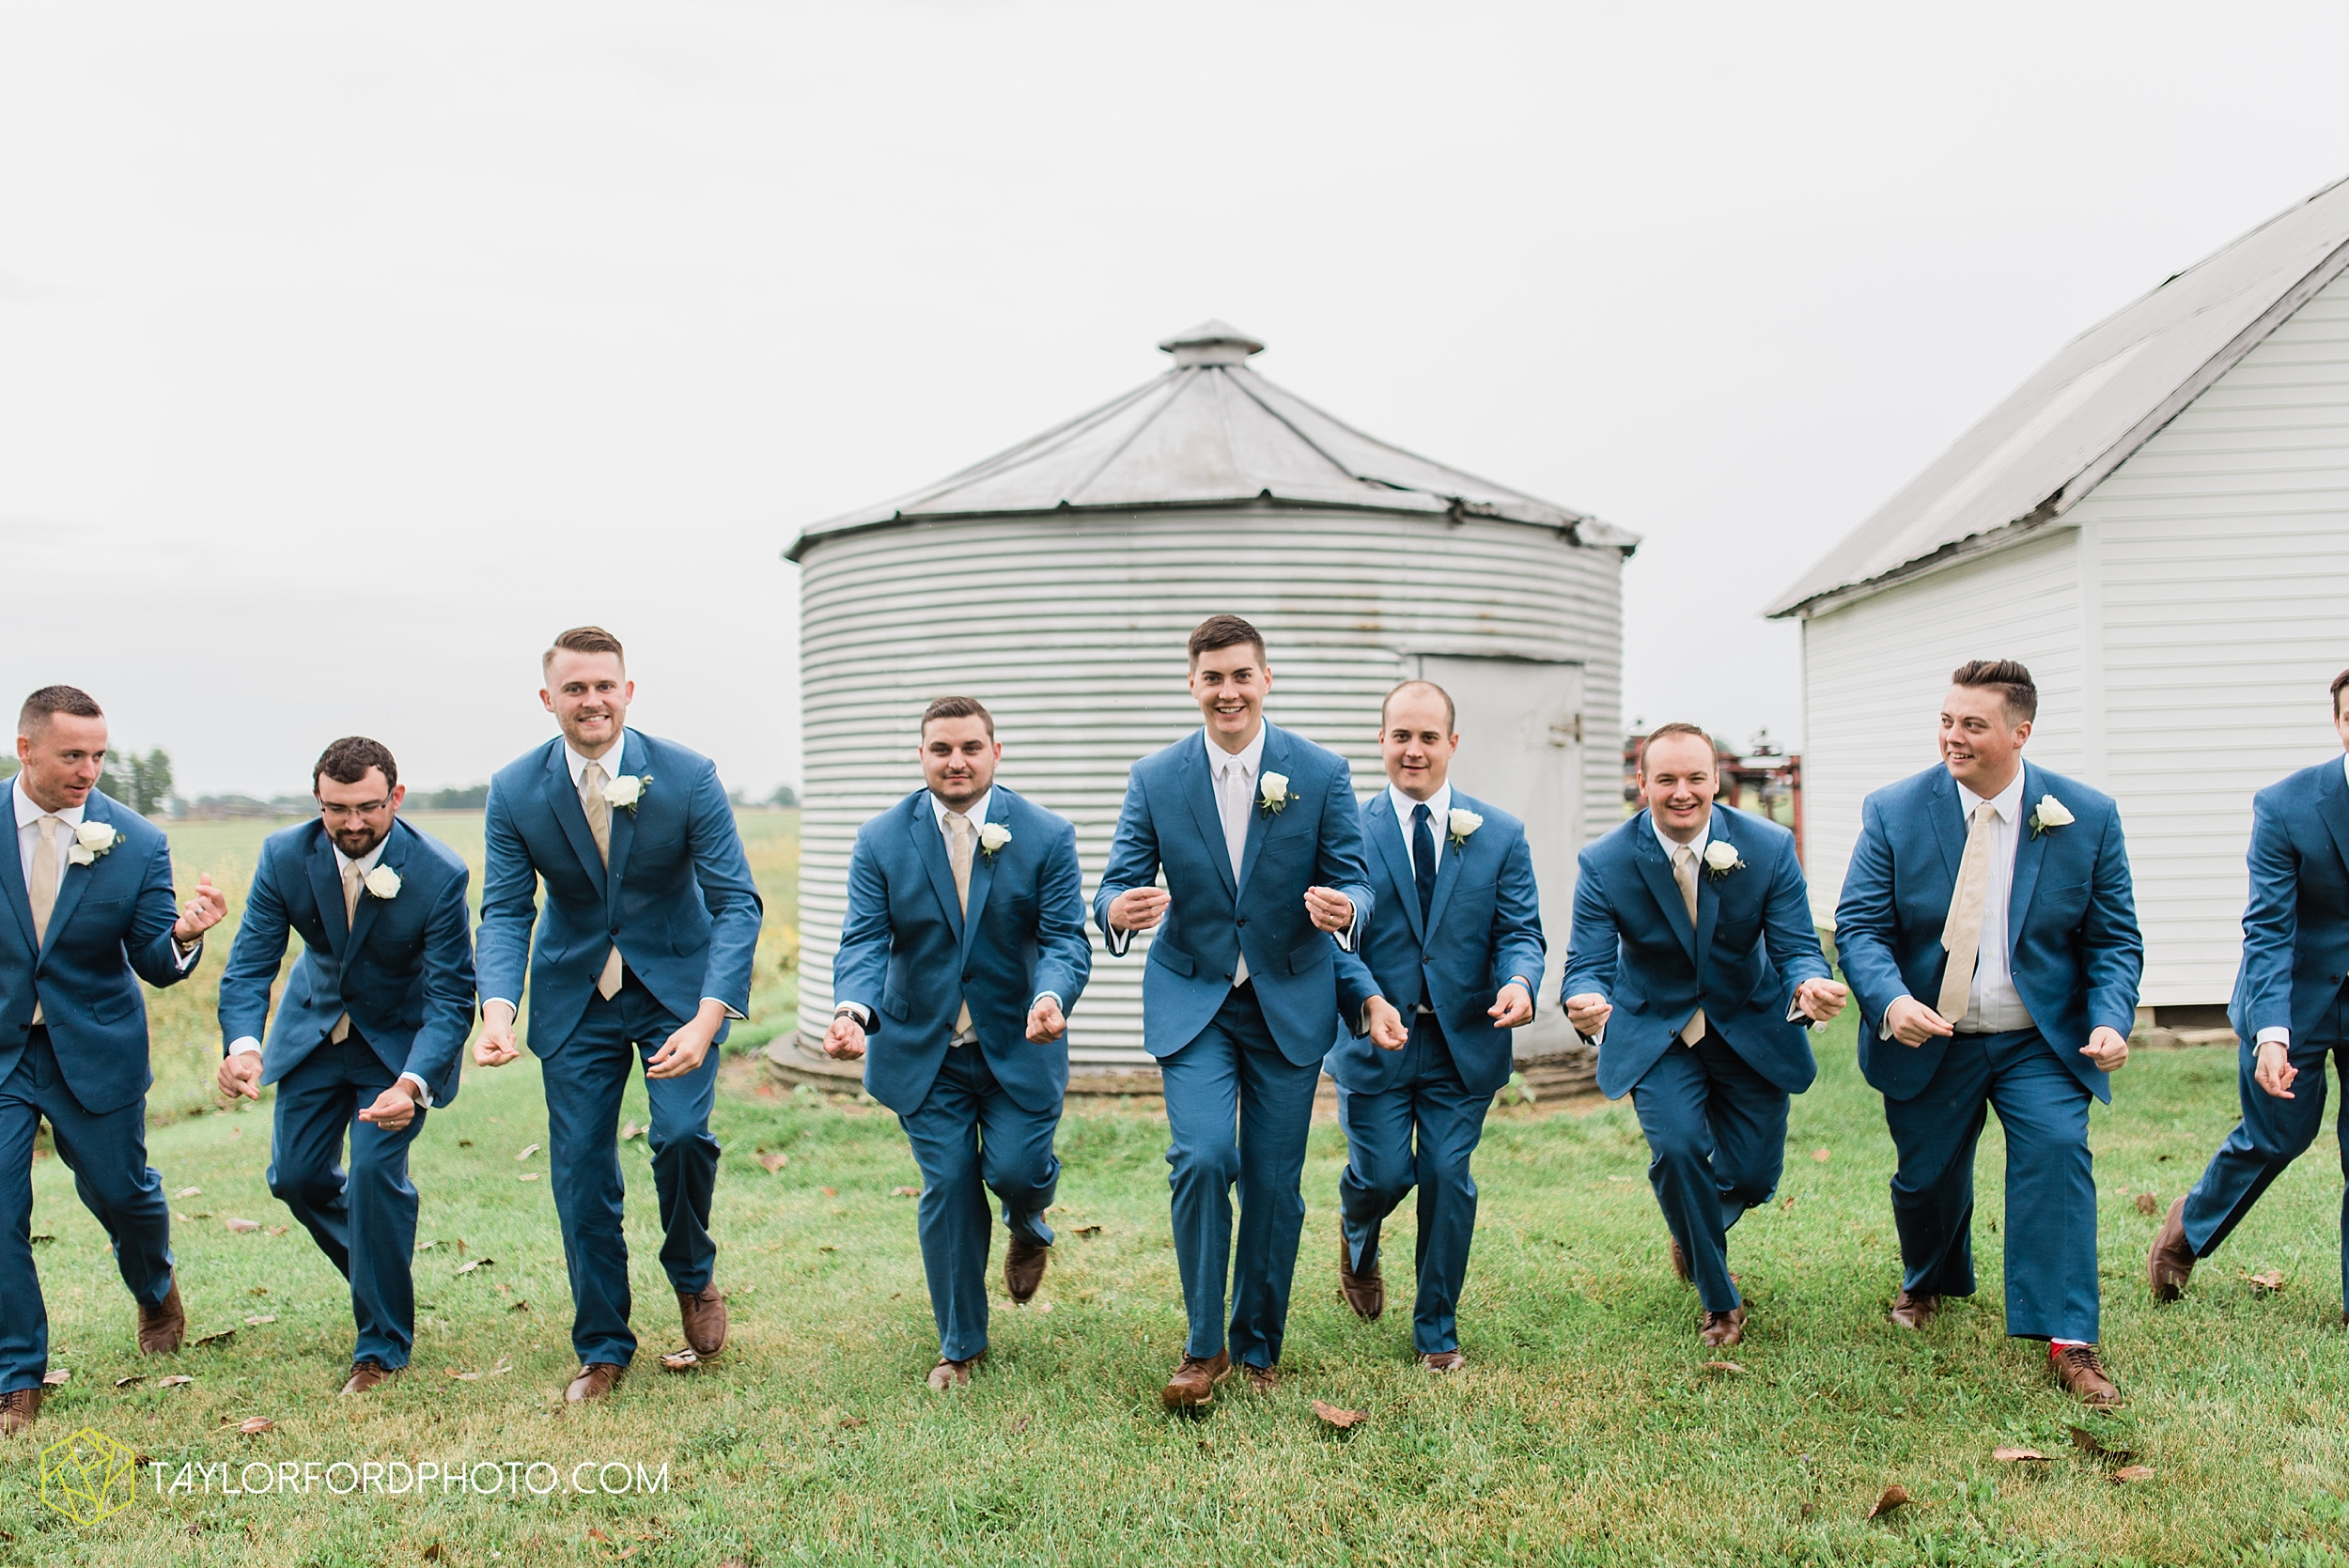 kacee-haden-sholl-second-story-saint-marys-knights-of-columbus-defiance-ohio-wedding-photographer-taylor-ford-photography_0169.jpg